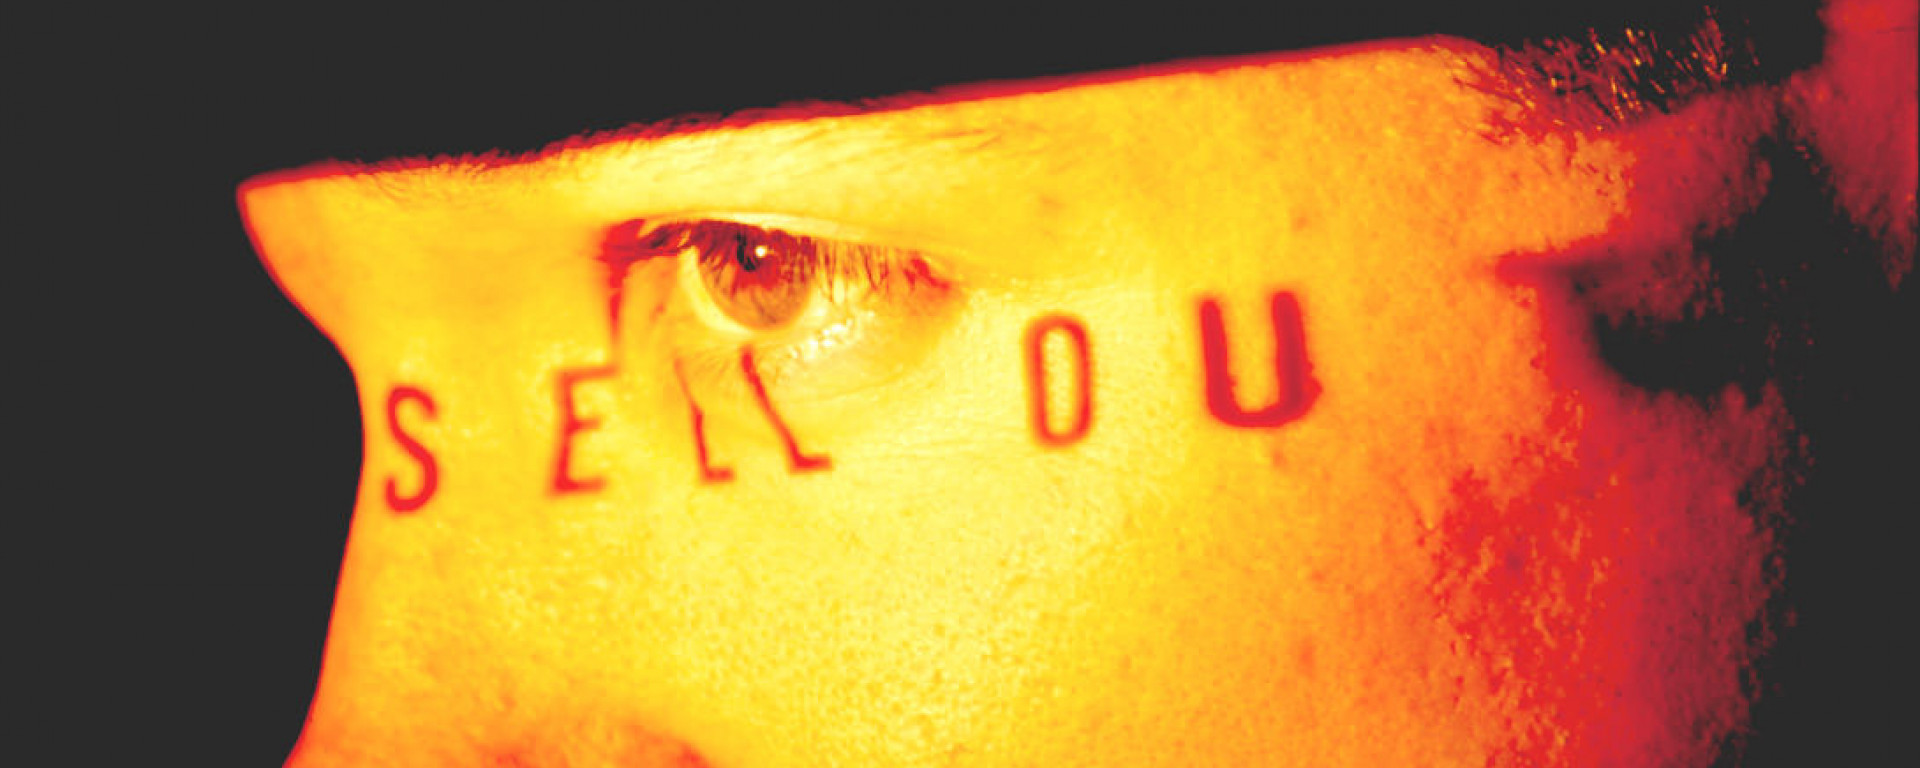 Extreme close-up of a man's profile – just his eye and part of his nose are visible. The words 'Sell Out' are projected across his skin